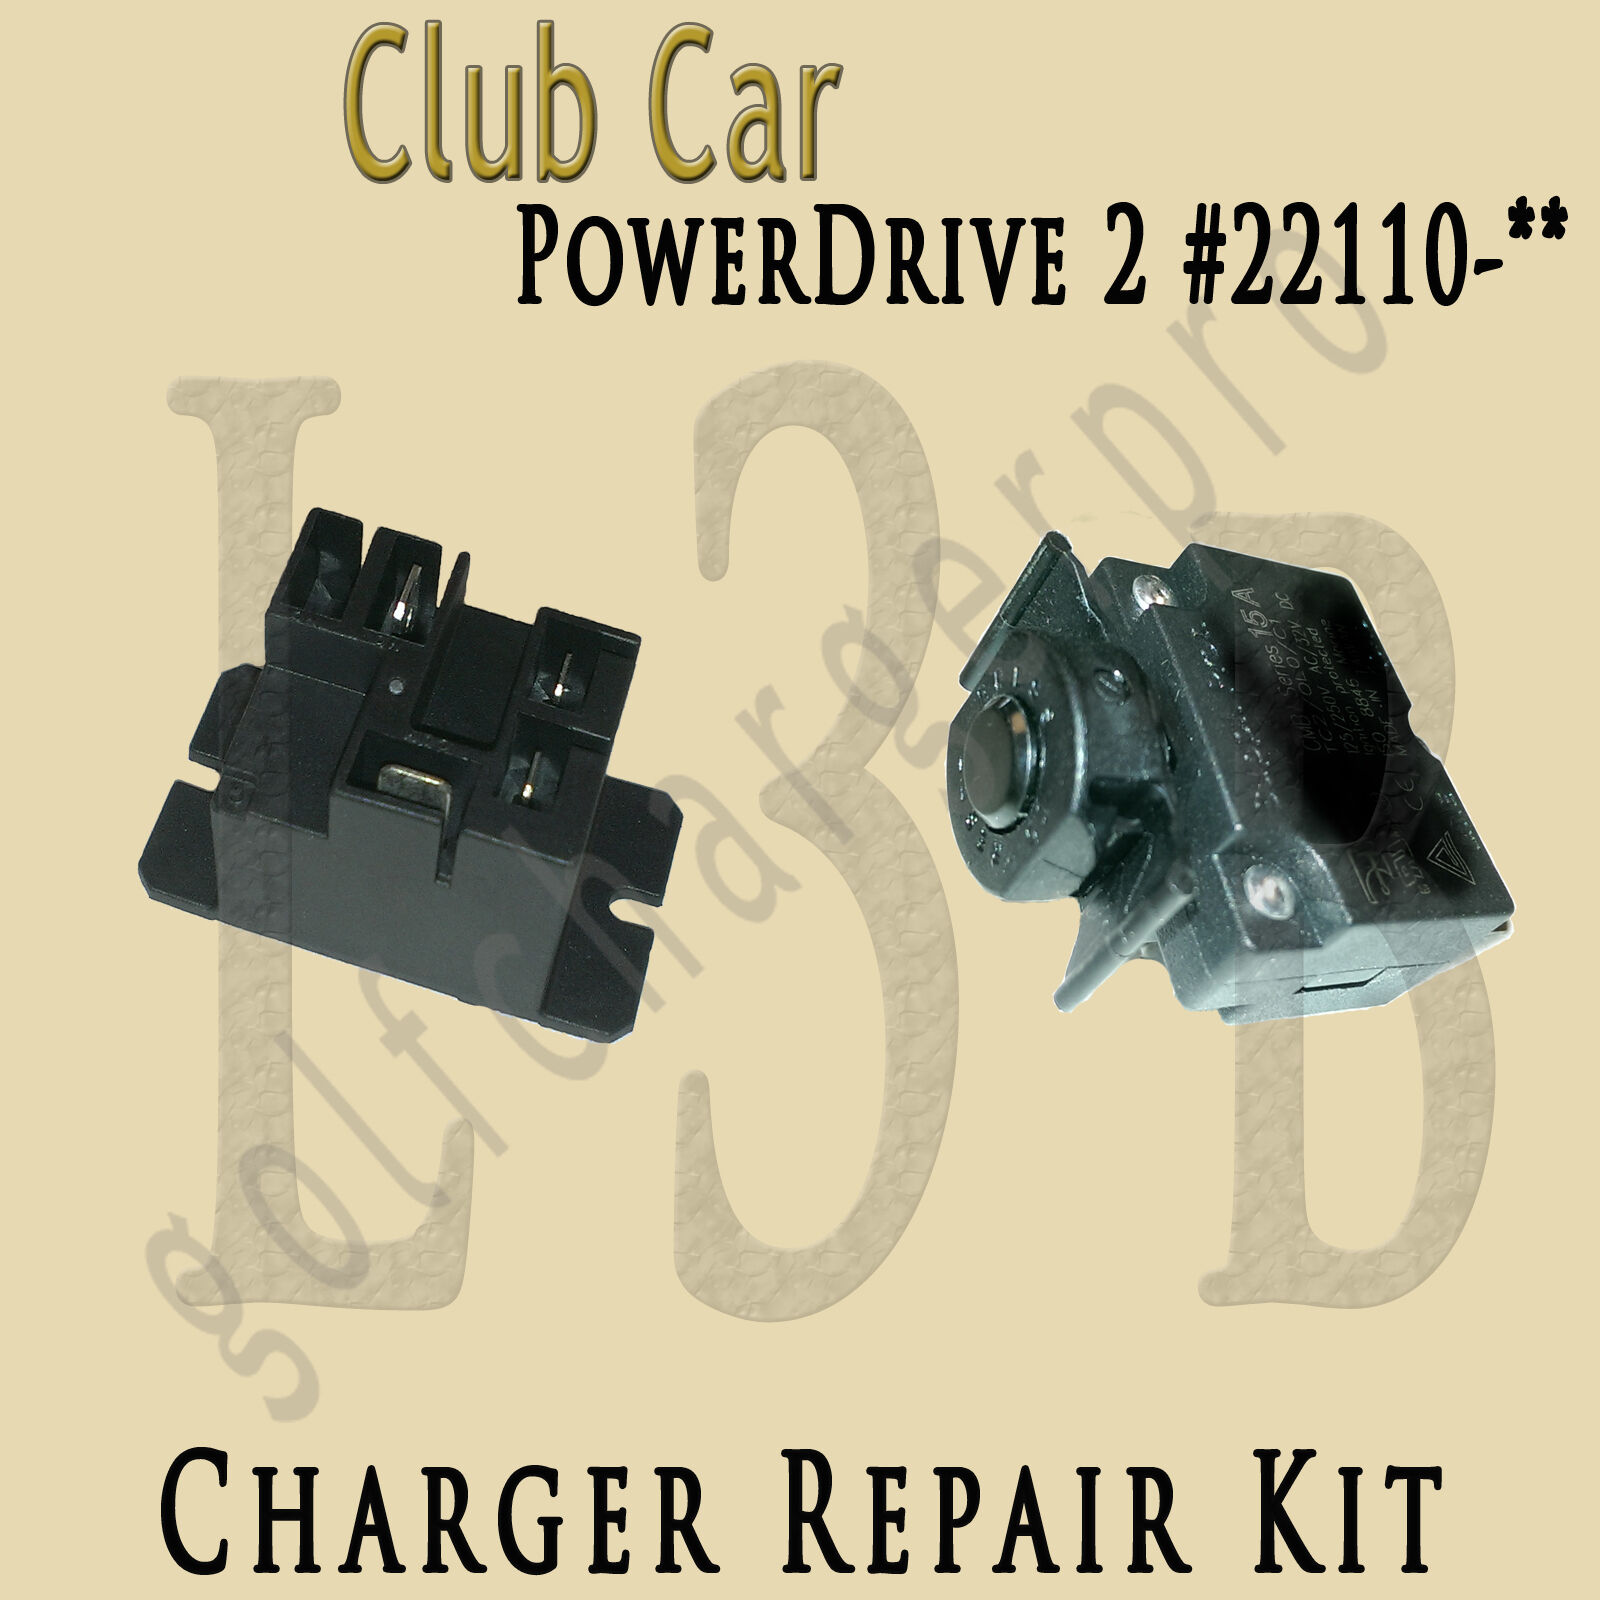 Club Car Charger Powerdrive 1 2 Kit Model 17930 22110 Relay Dpi 48v Wiring Diagram Of 1free Shipping